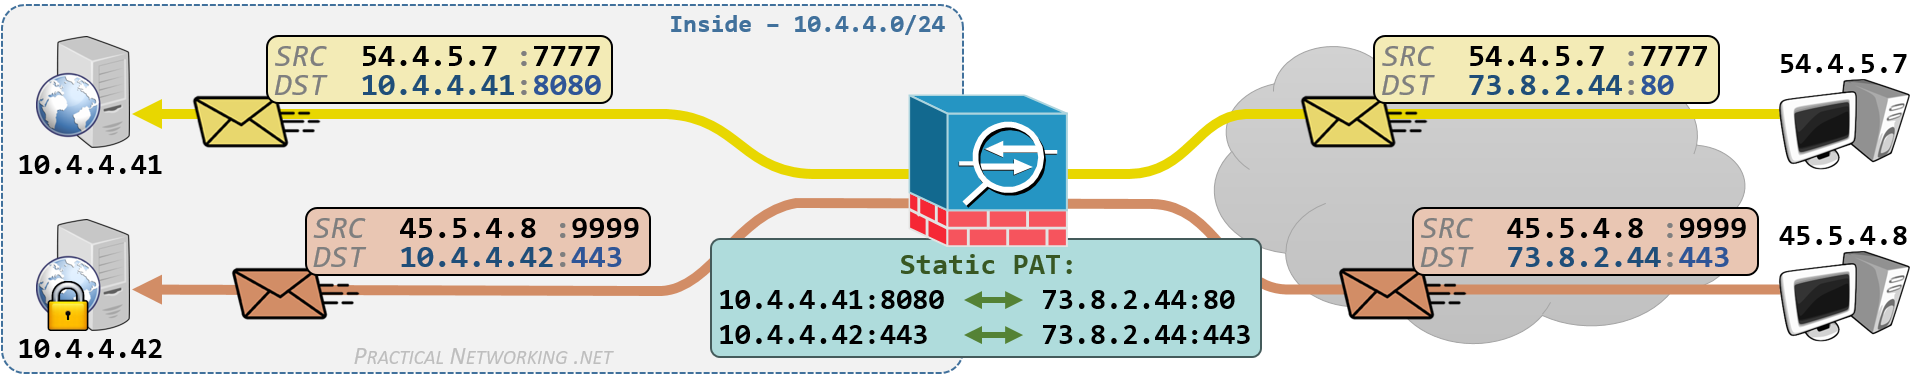 Cisco ASA NAT - Configuring Static PAT with Auto NAT and Manual NAT - Inbound